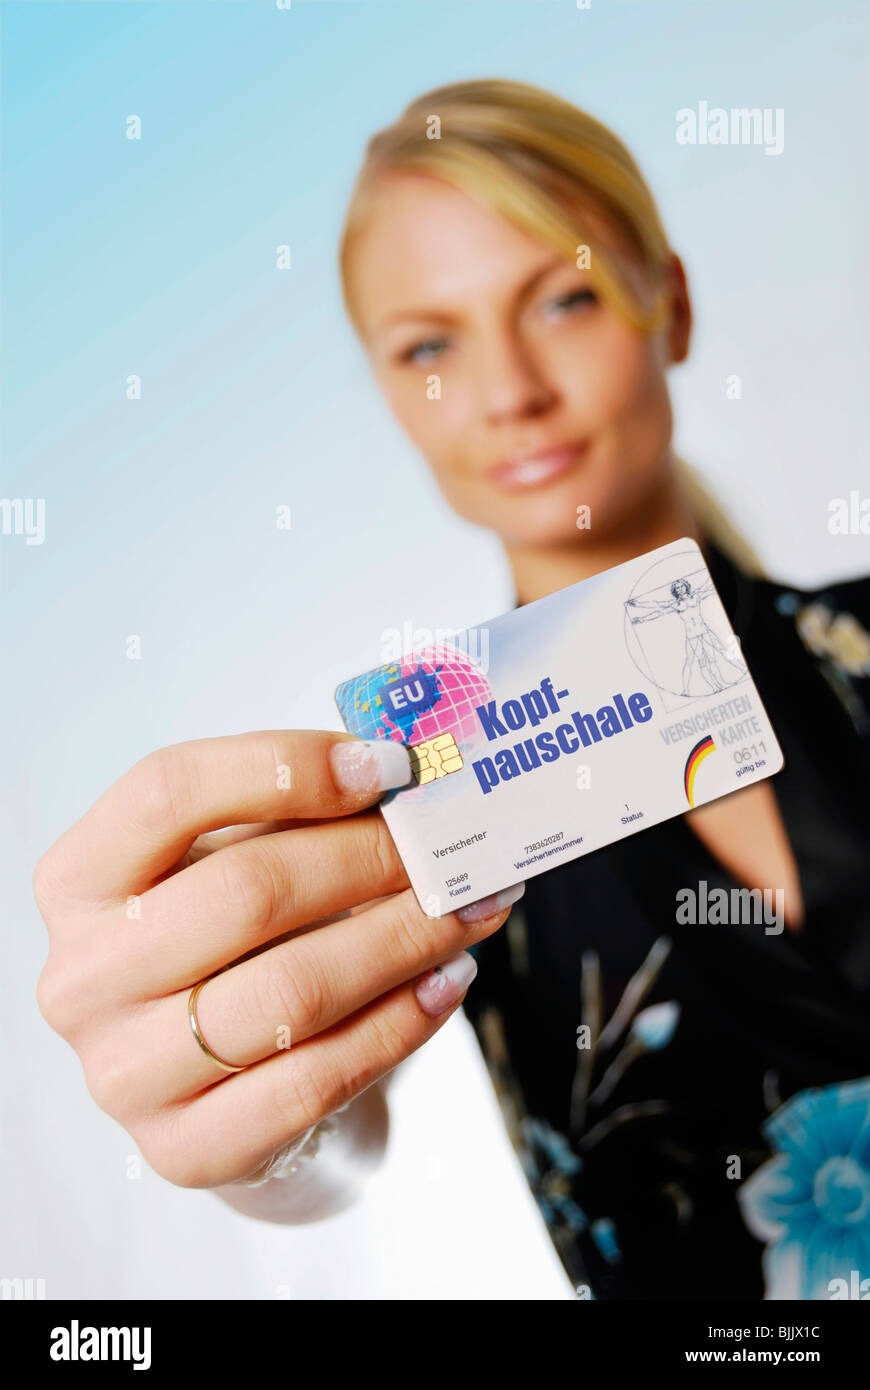 Young woman holding insurance card, Kopfpauschale, capitation fee, written on it - Stock Image